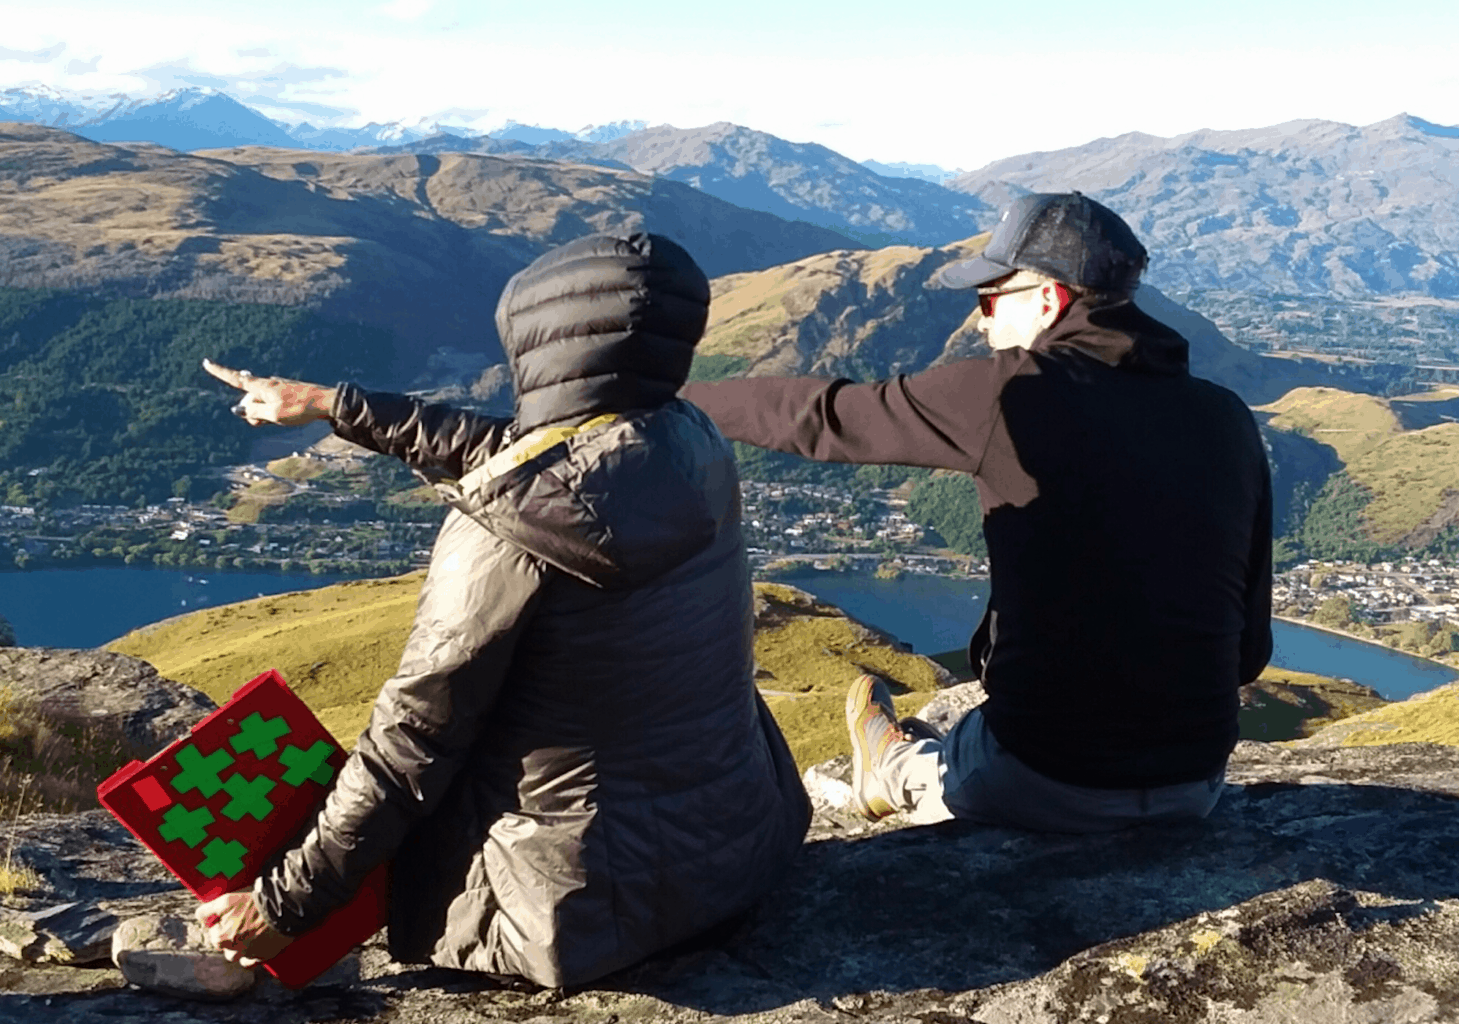 Rachel (left) on location in New Zealand, planning VFX work on a large-scale battle scene.